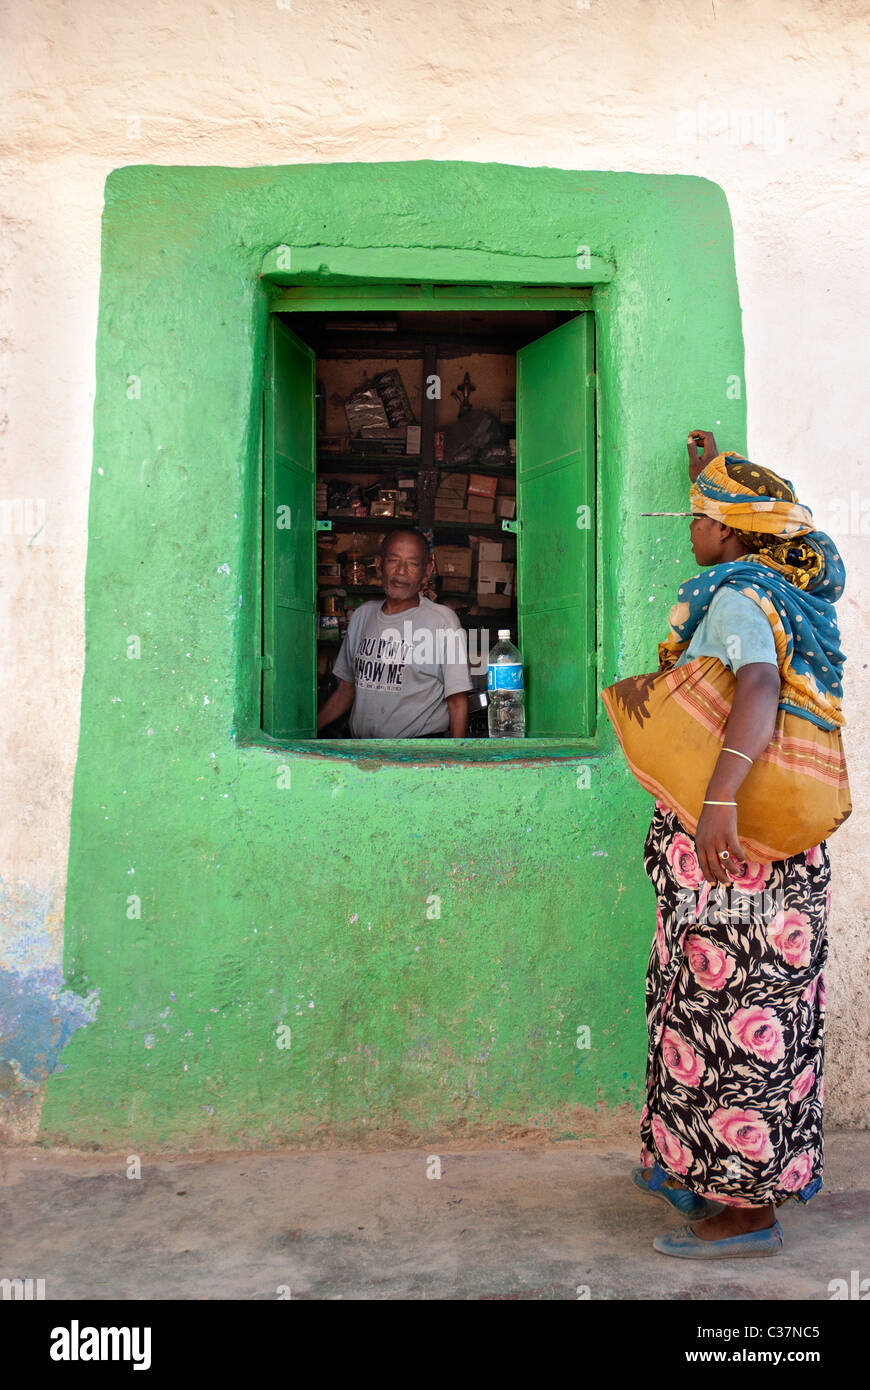 grocery shop in harar ethiopia - Stock Image